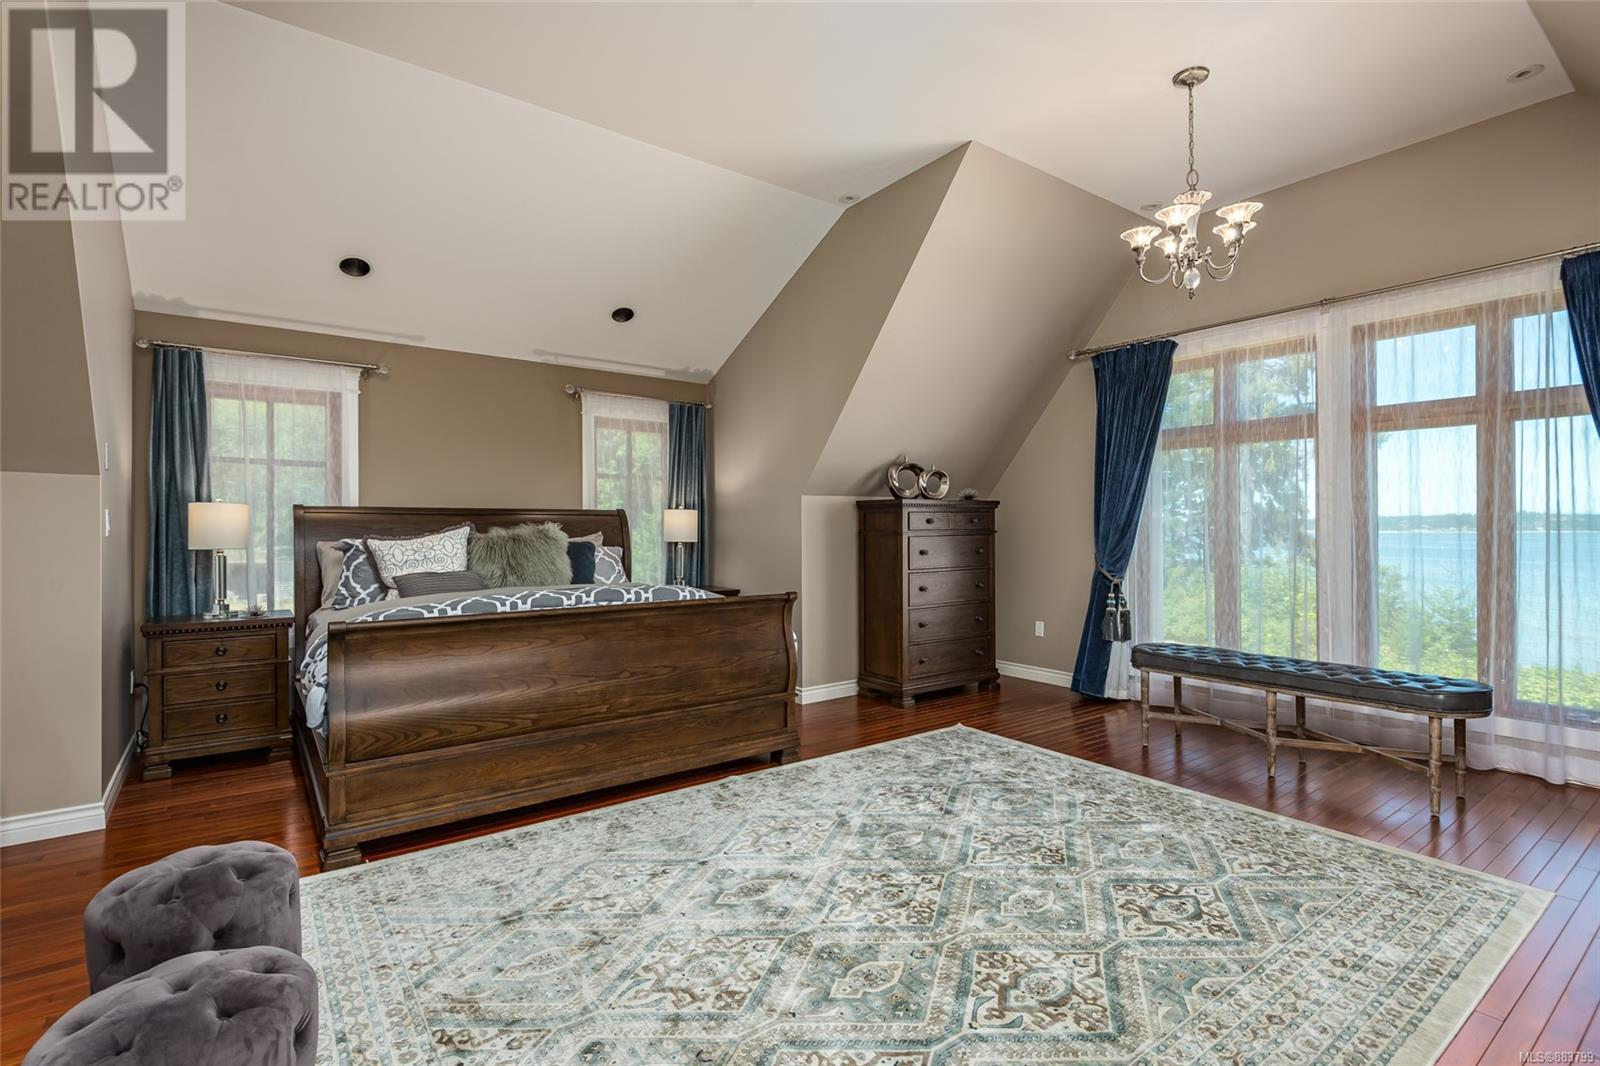 MLS® #883799 - Courtenay House For sale Image #44